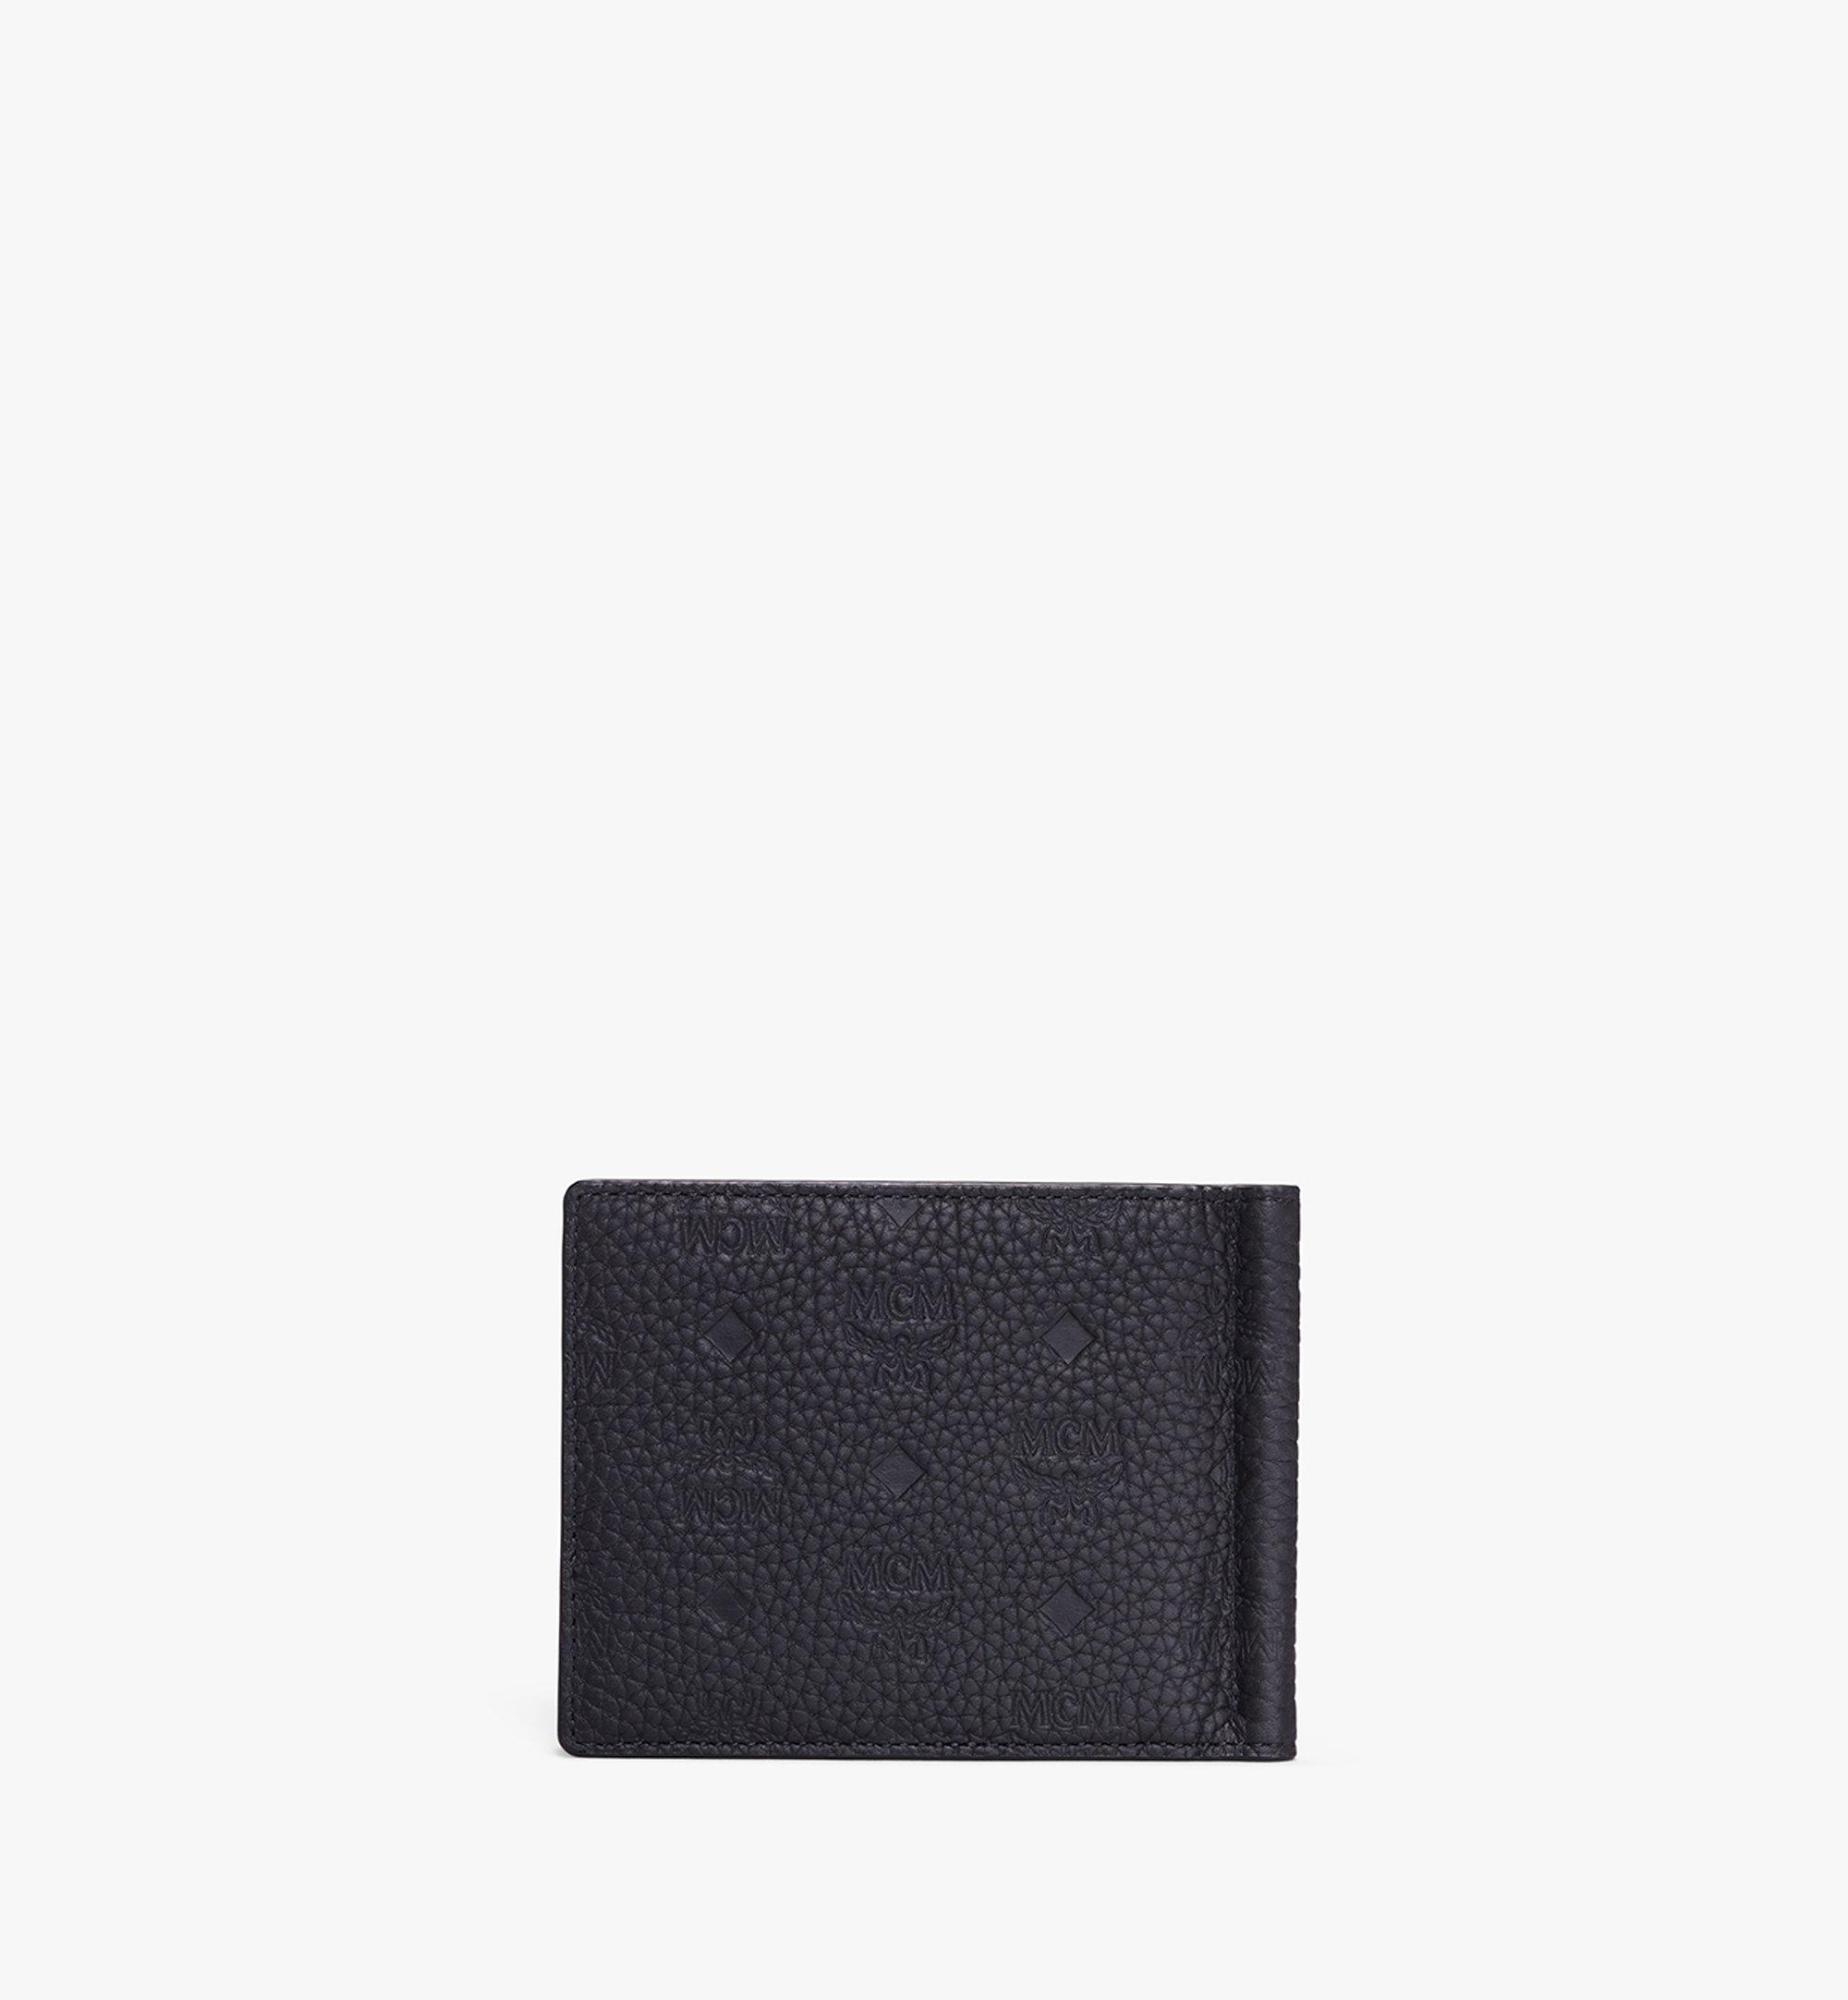 One Size Tivitat Money Clip Wallet In Monogram Leather Black Mcm Th